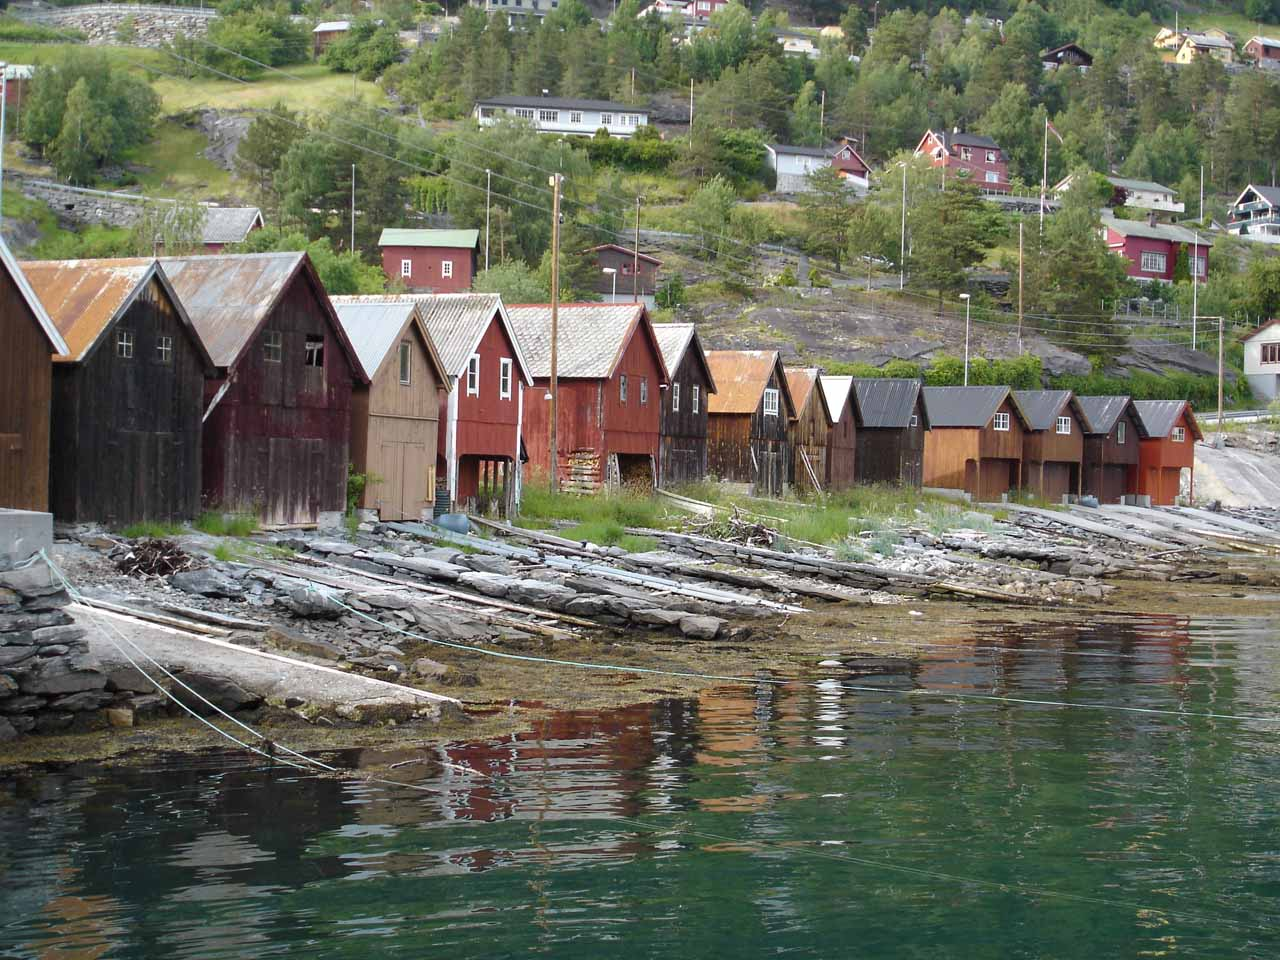 While driving along the local road 92 along Tafjorden to the trailhead for Muldalsfossen, we saw these beautiful Norwegian homes right on the waterfront